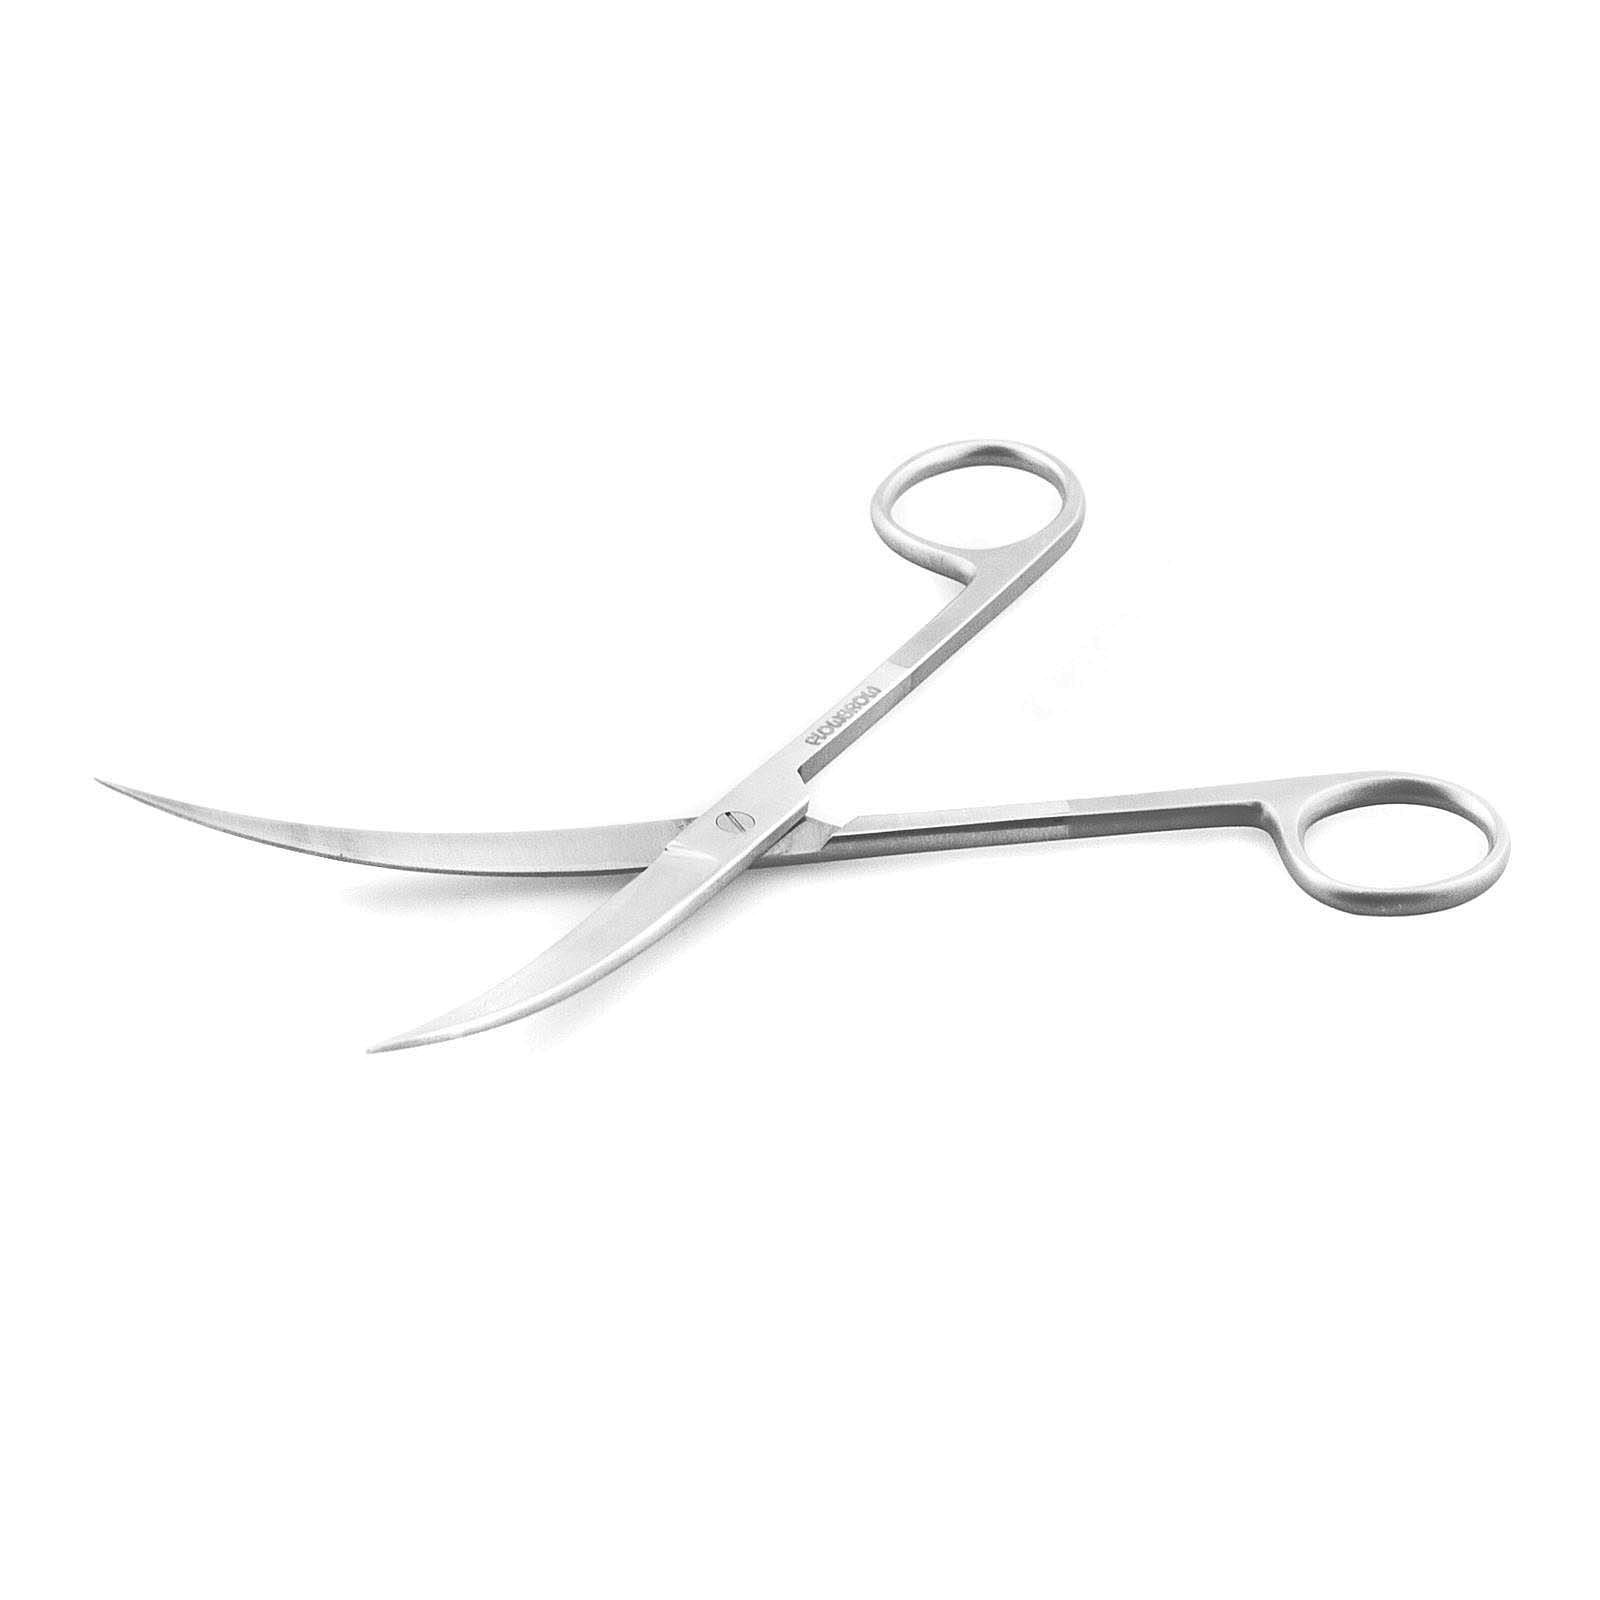 Flowgrow - Short Scissors - gebogen - 16,8 cm - Standard